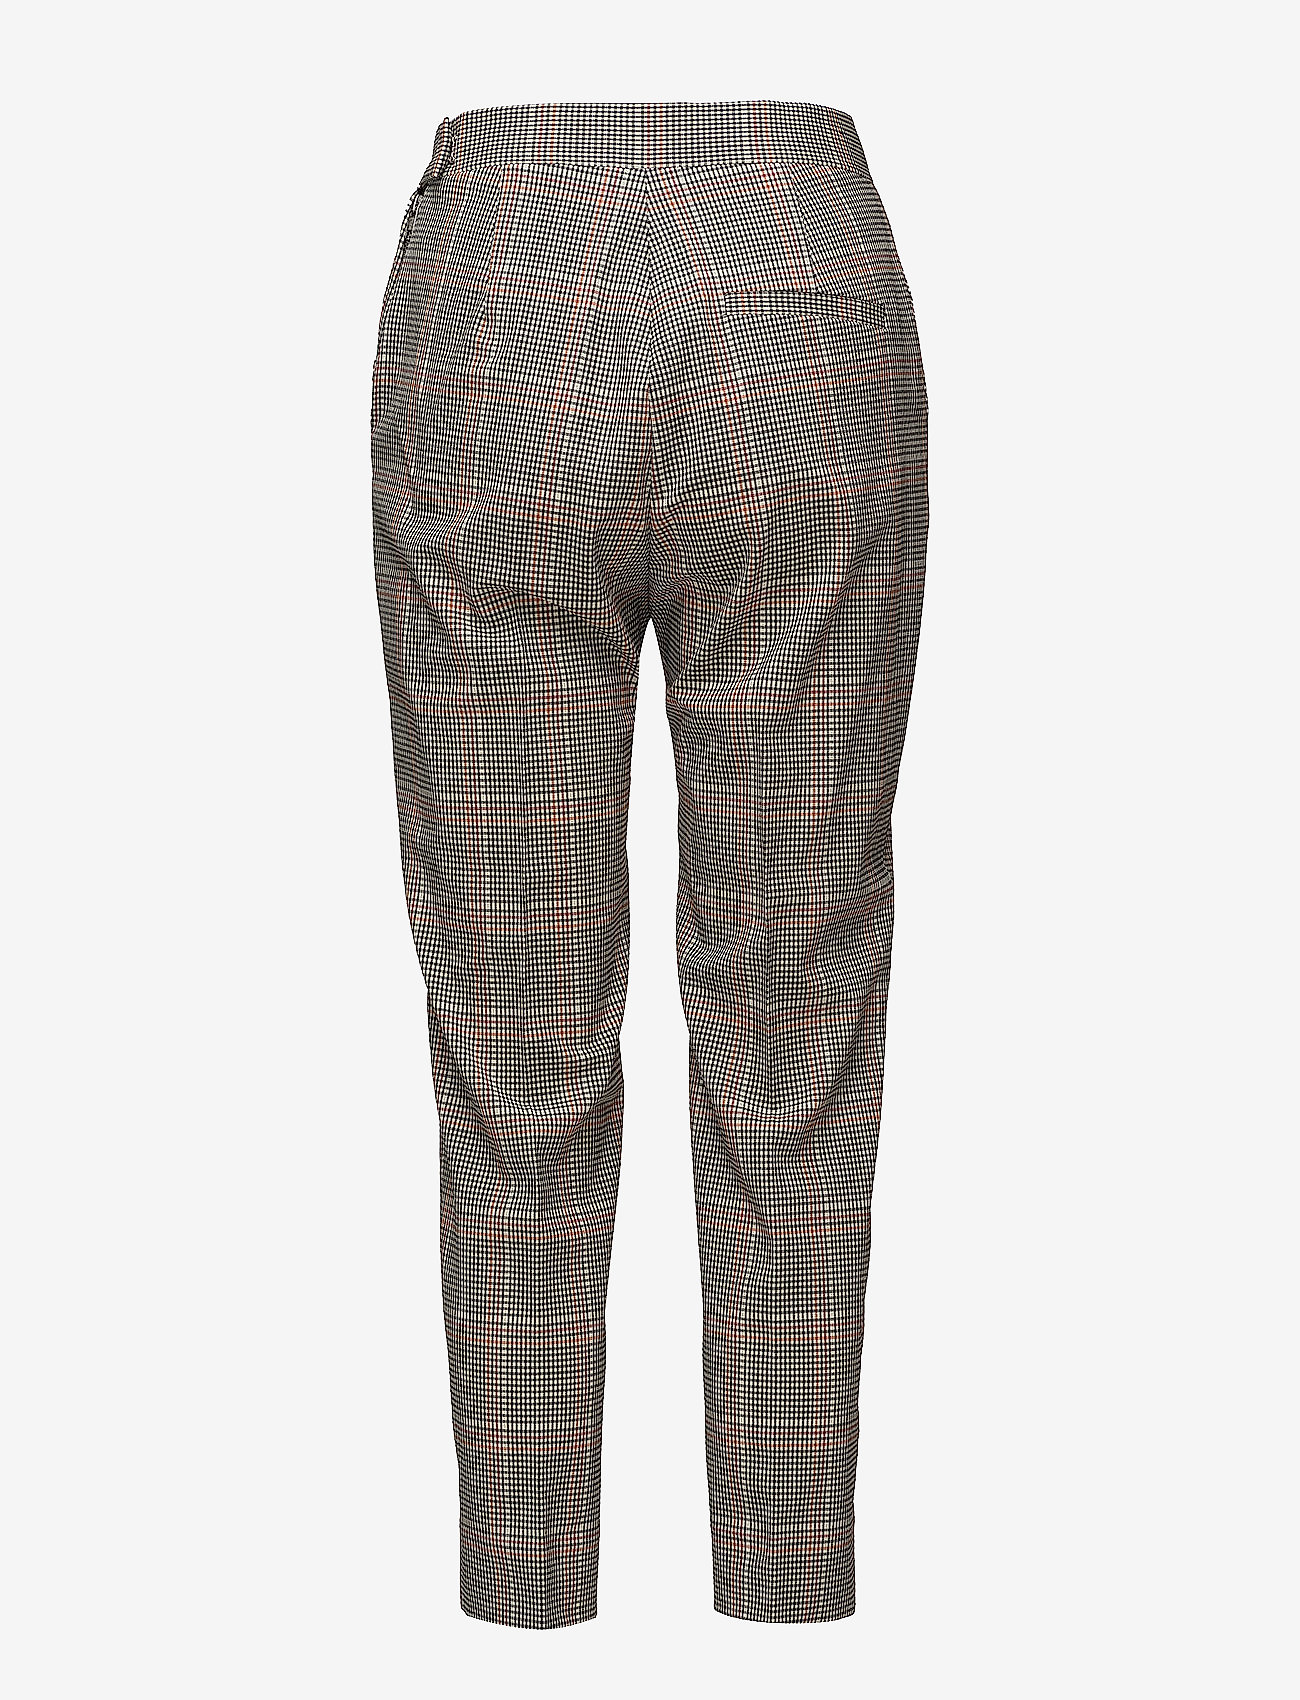 J. Lindeberg Mandalay Acid Glen - Trousers WHITE